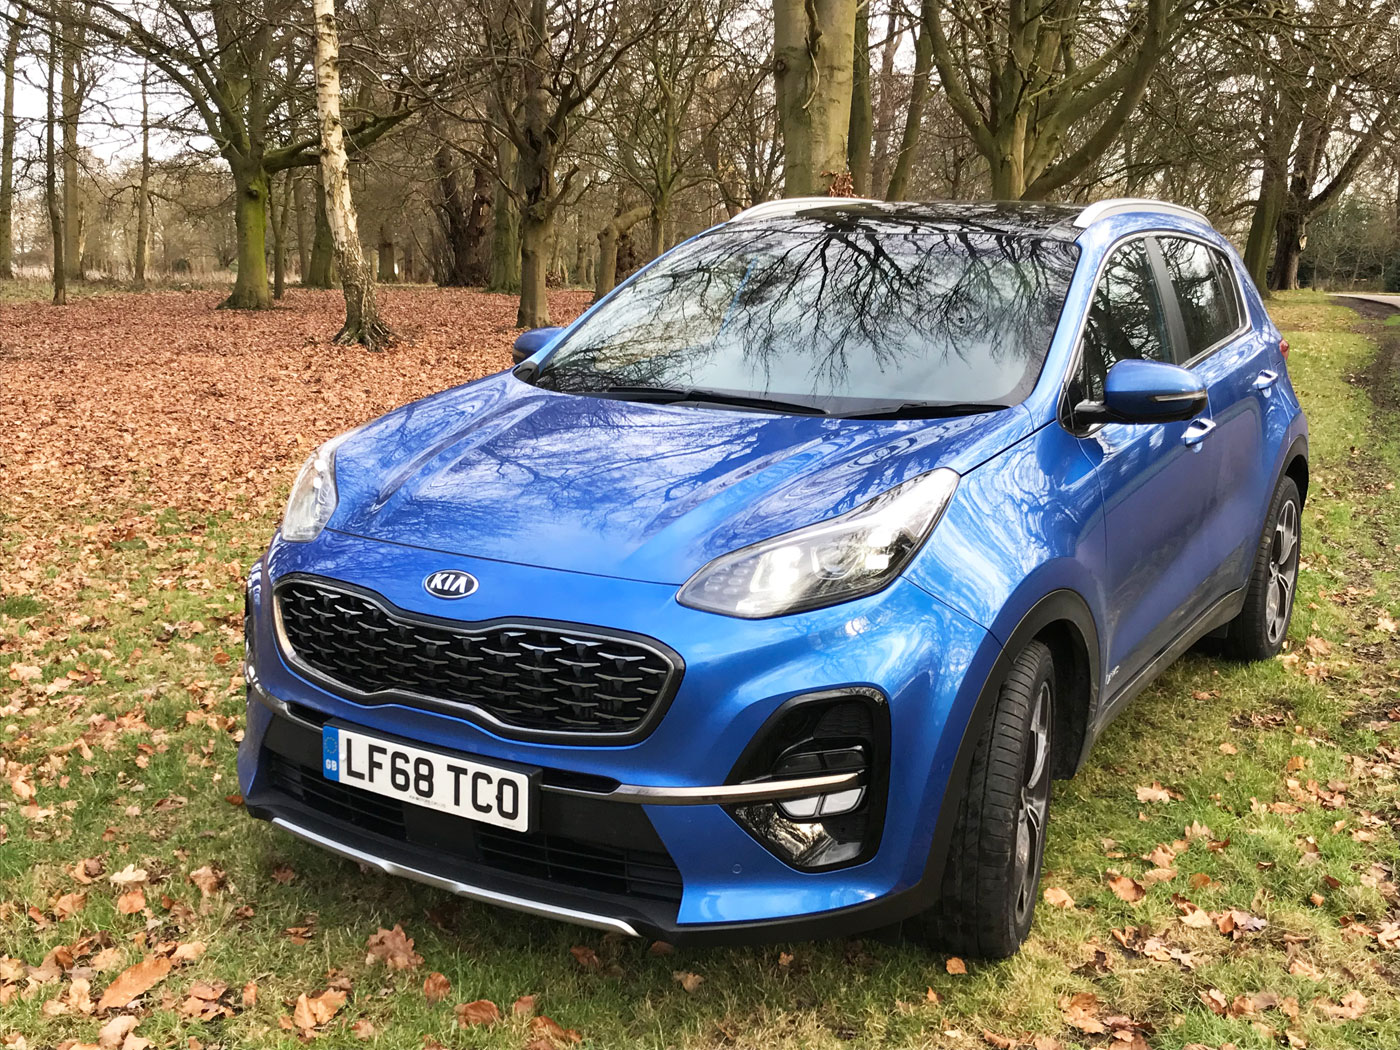 Review: KIA SPORTAGE 'GT-LINE S' 2.0 CRDi 48V 8-speed auto ISG AWD 6